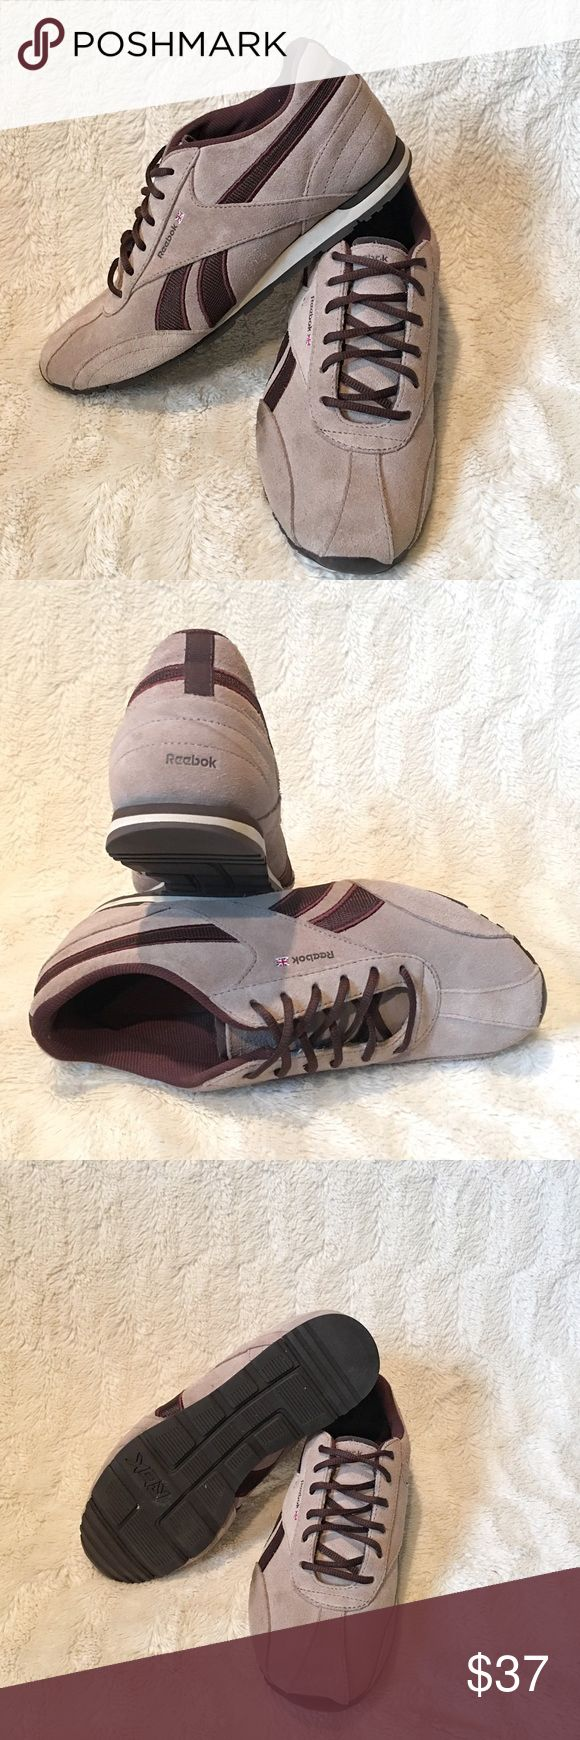 Reebok Suede Shoes Excellent condition. Worn once Reebok Shoes Sneakers